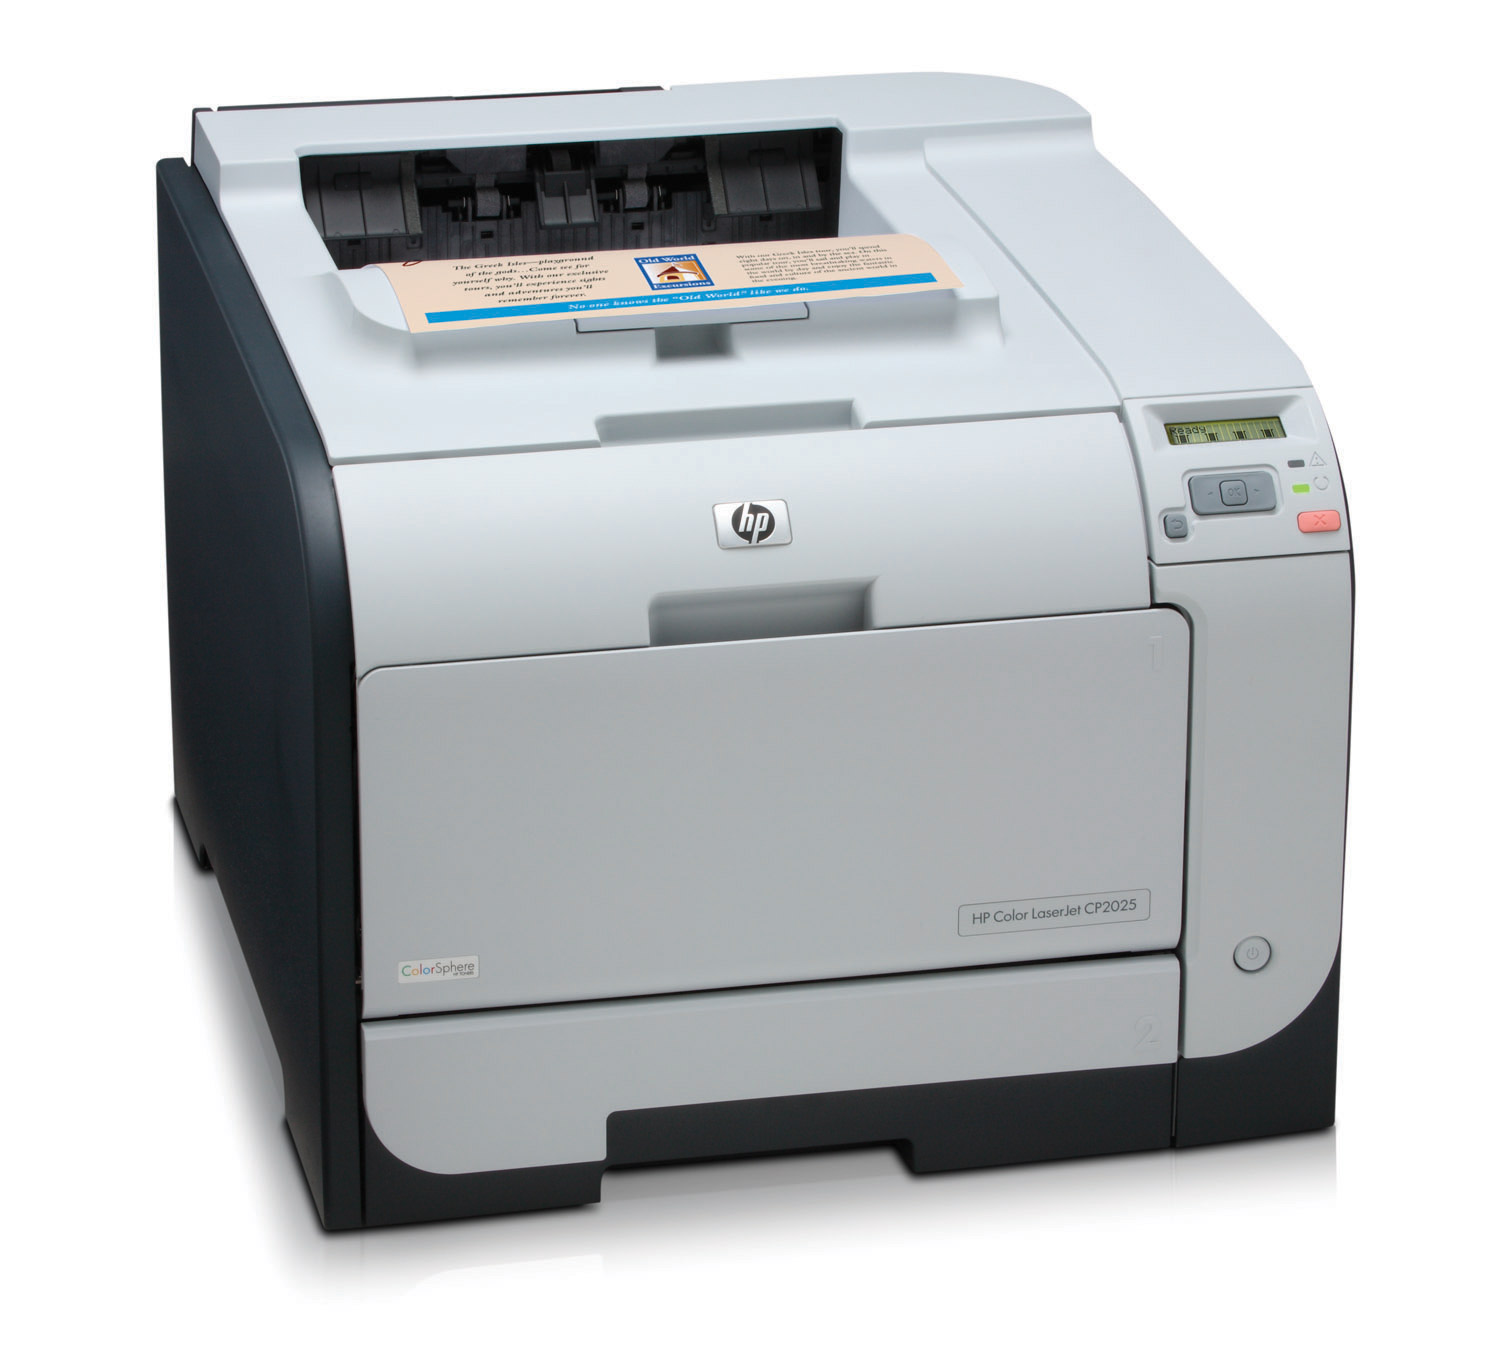 Hp m750 color printing cost per page - Hp Color Laserjet Cp2025n Printer